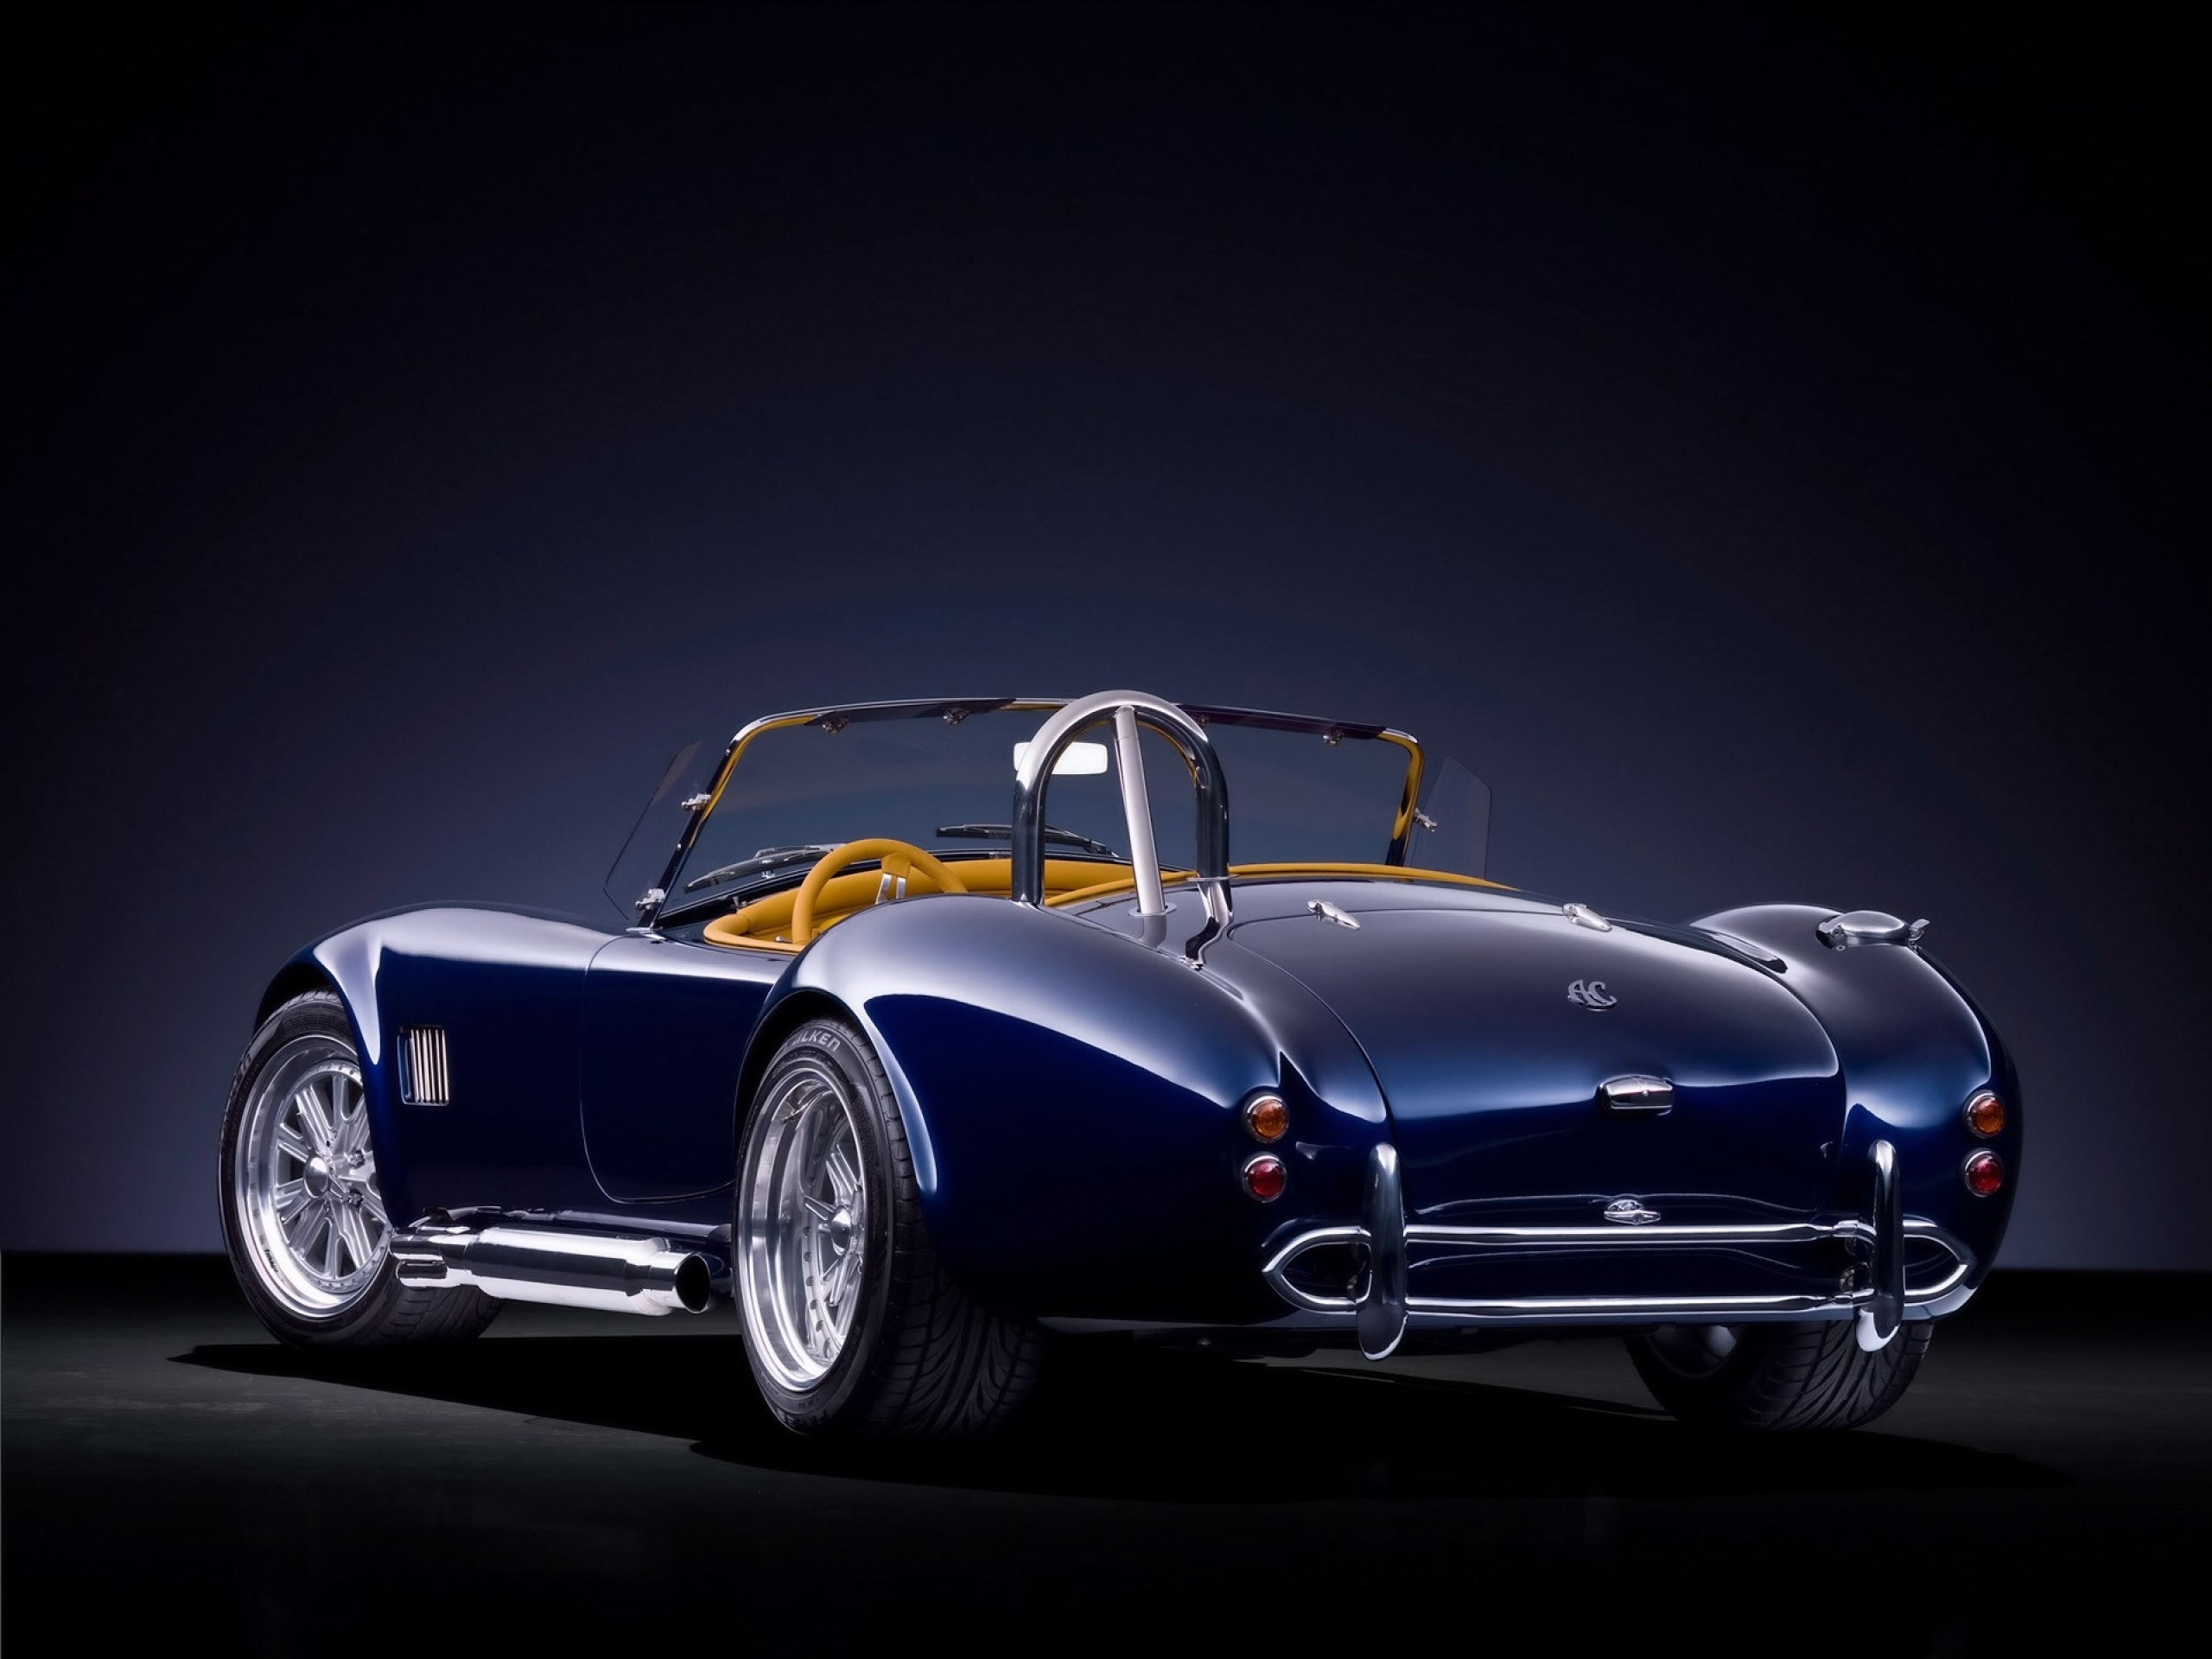 American Muscle Cars Hd Wallpapers Download Ac Cobra Full Hd Wallpaper And Background Image